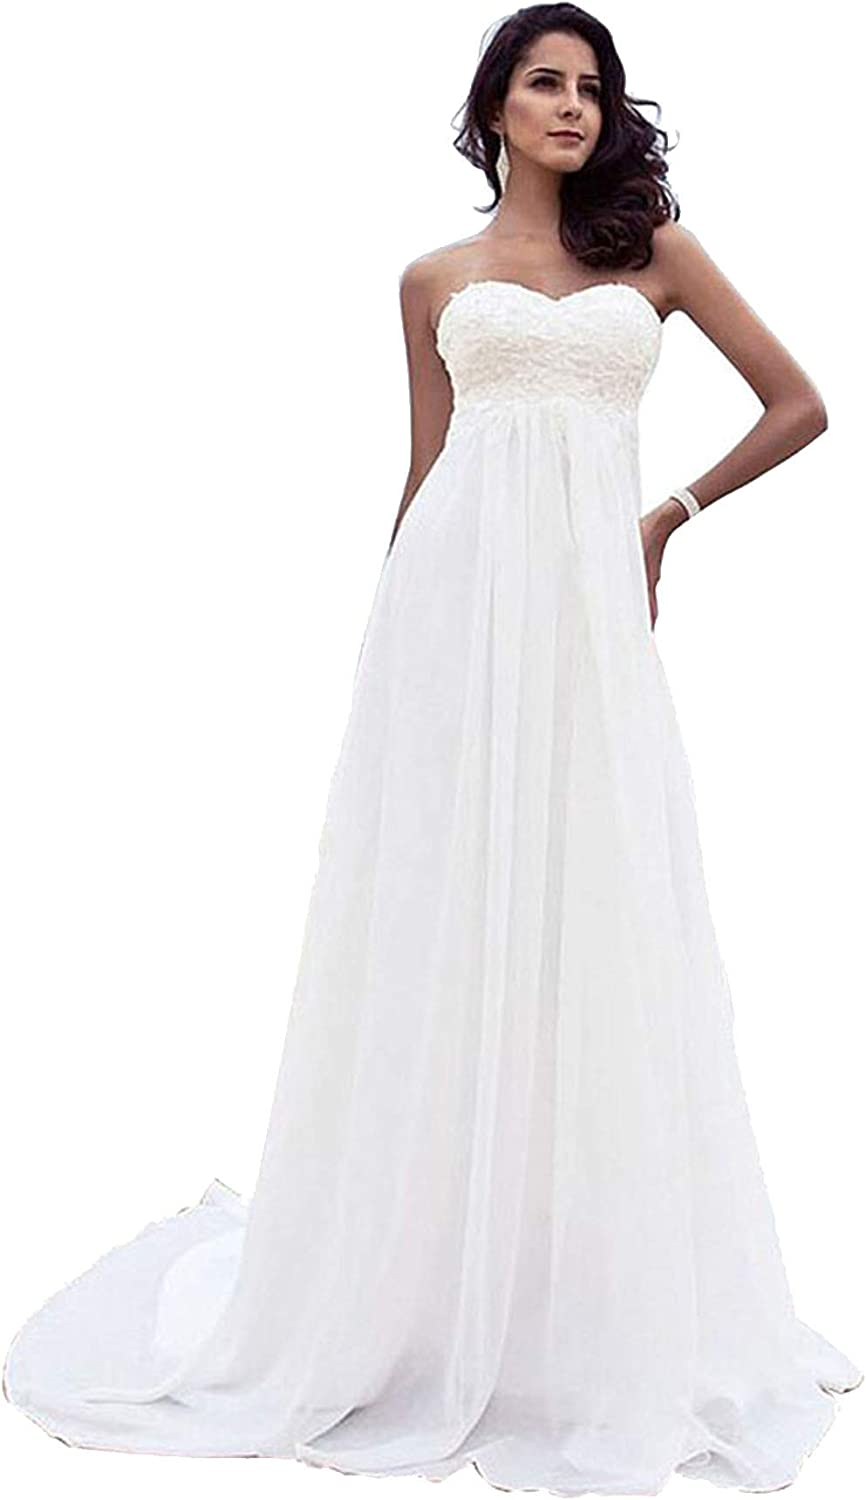 Babygirls Beach Wedding Dress Plus Size for Woman Long Wedding Dresses Lace  Chiffion for Bride 18 Pearls Bride Gowns